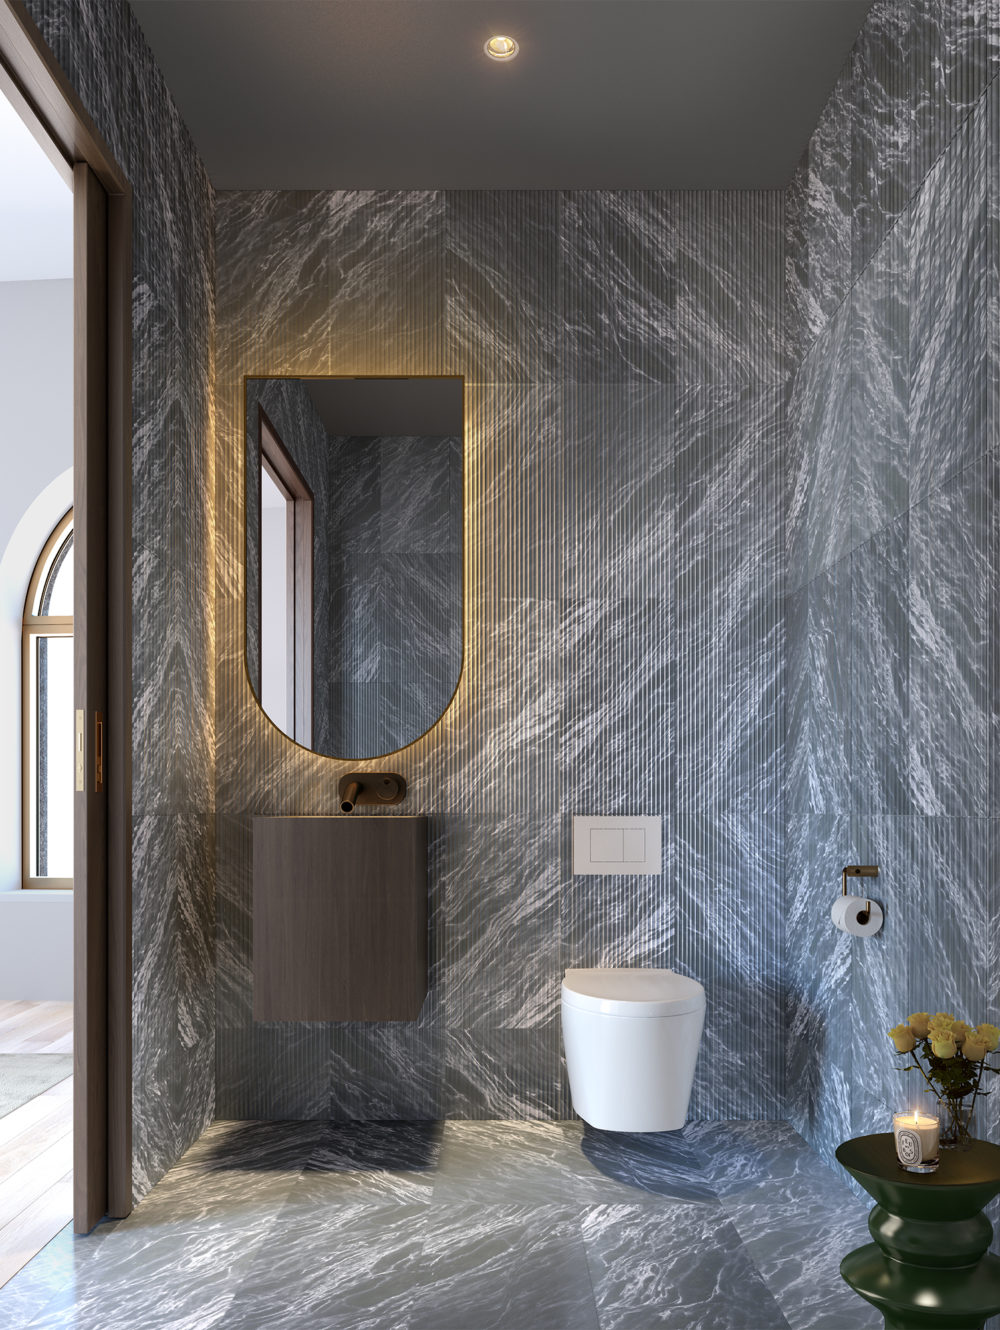 View of 130 William residence powder room in New York City. Includes marble floors and marble walls and glowing mirror.